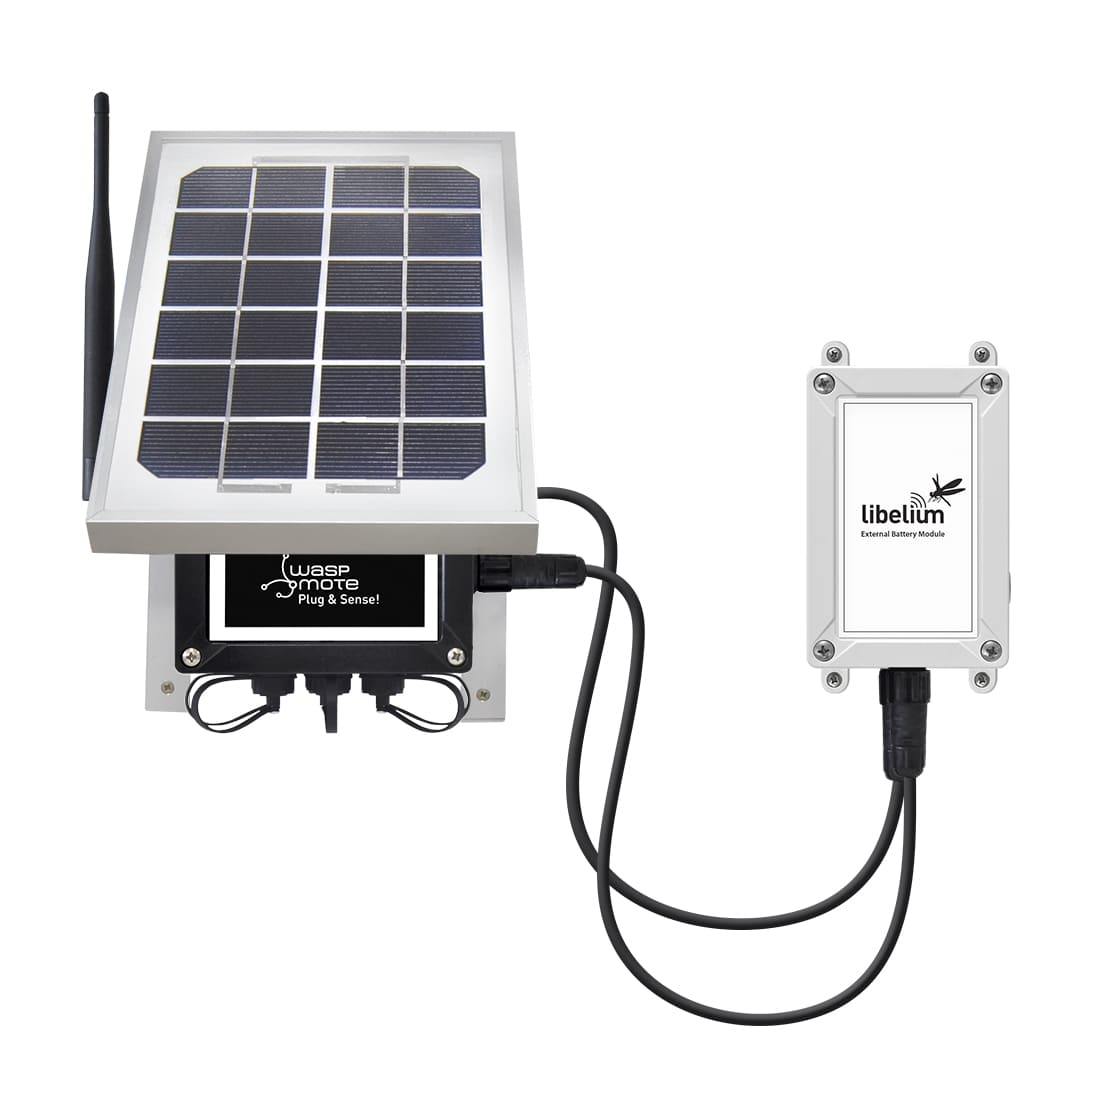 Plug & Sense! with External Battery Module and solar panel